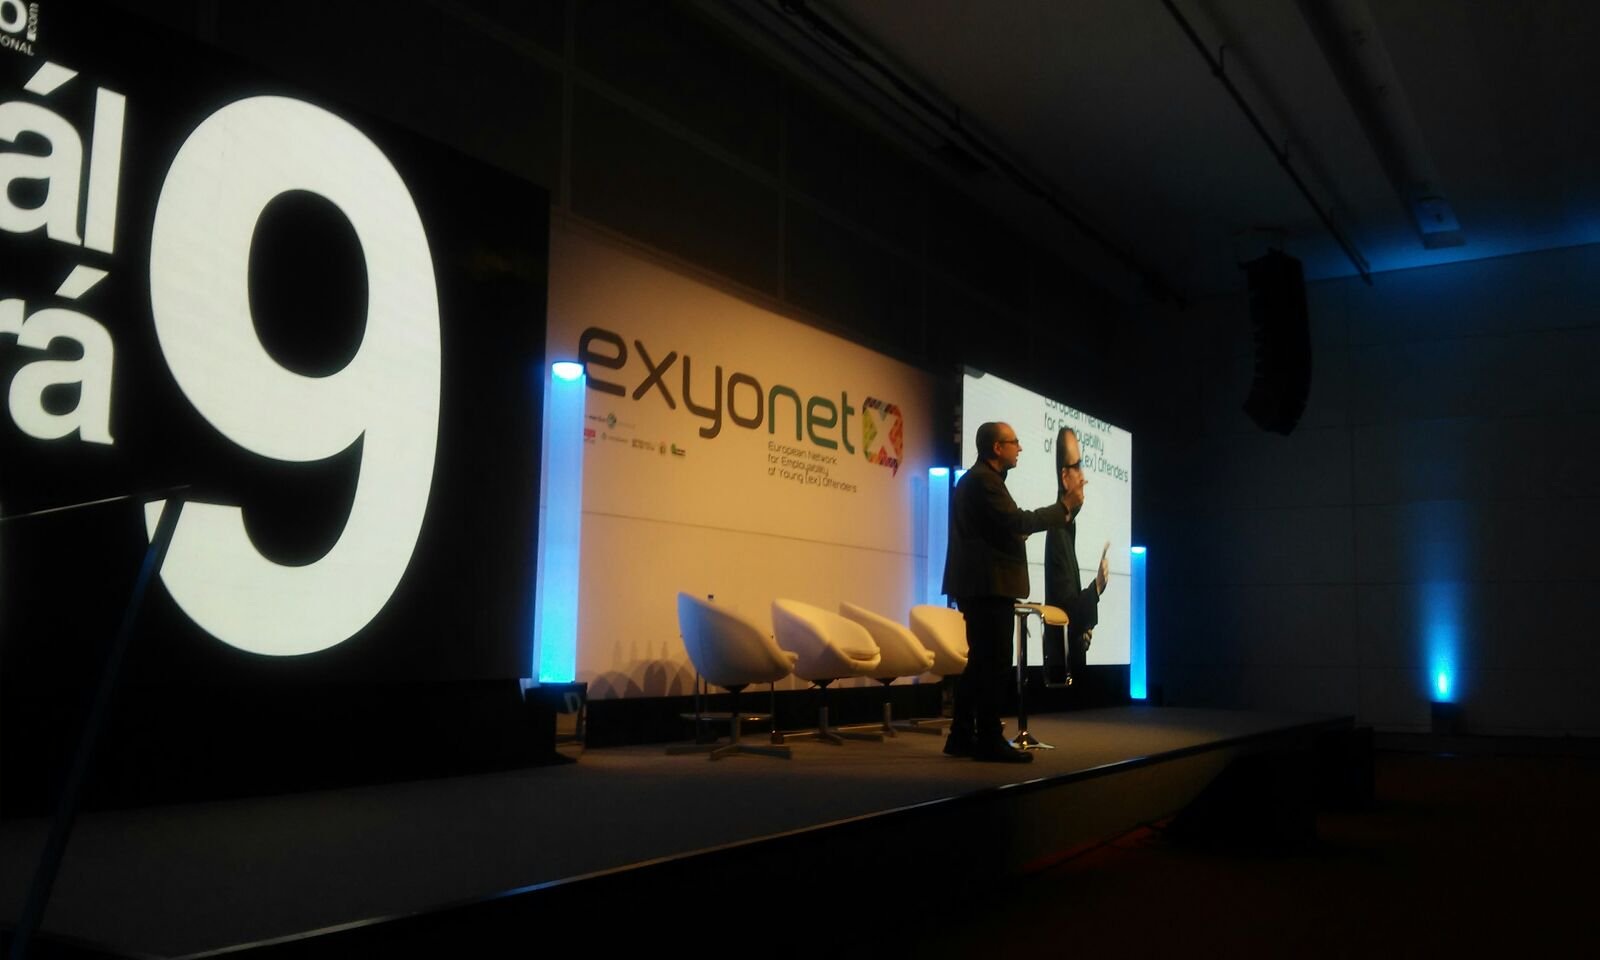 Exyonet – European Network for employability of Young (ex) offenders